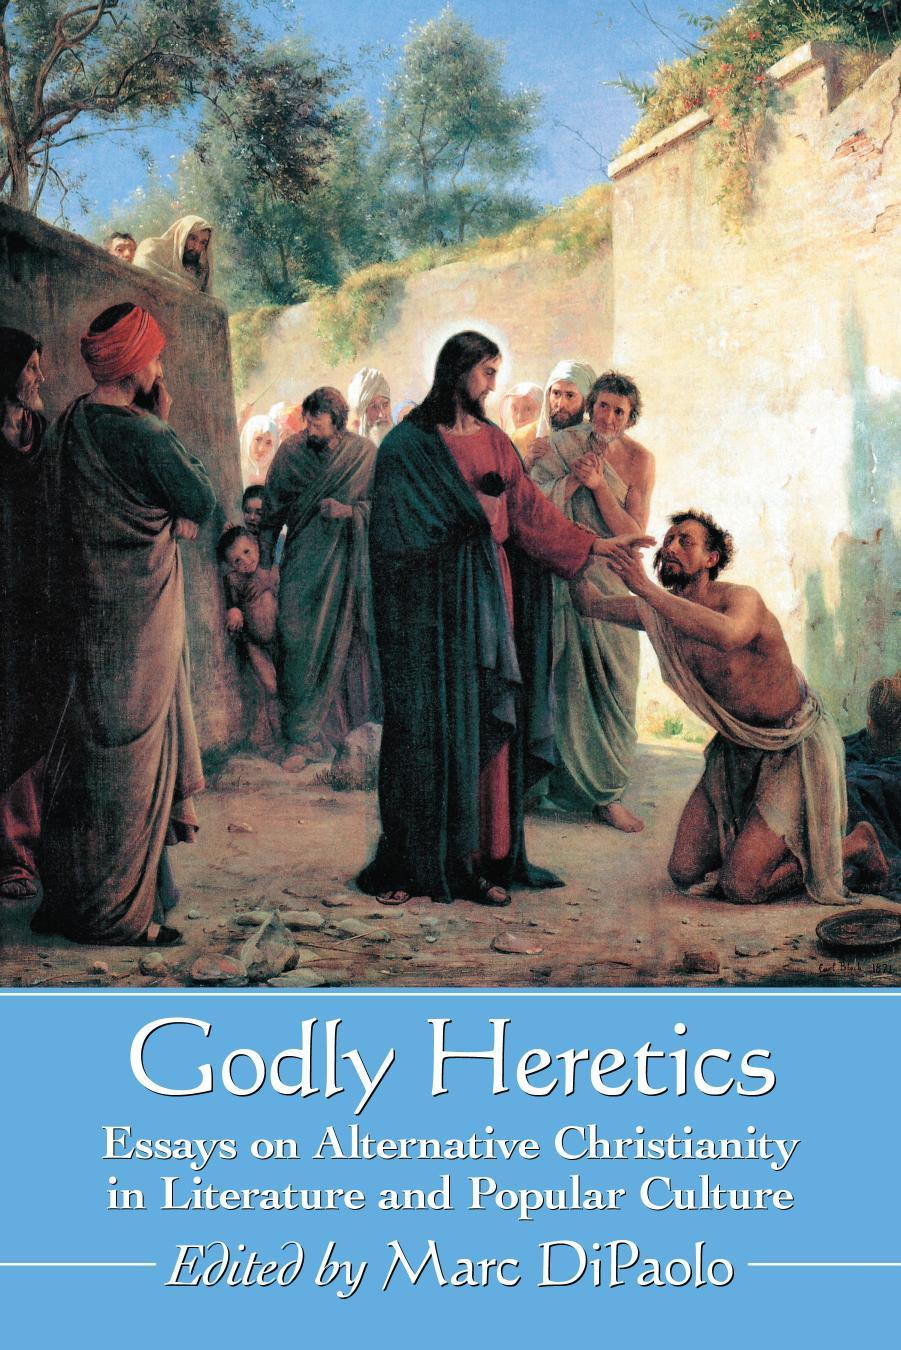 Godly Heretics- Essays on Alternative Christianity in Literature and Popular Culture